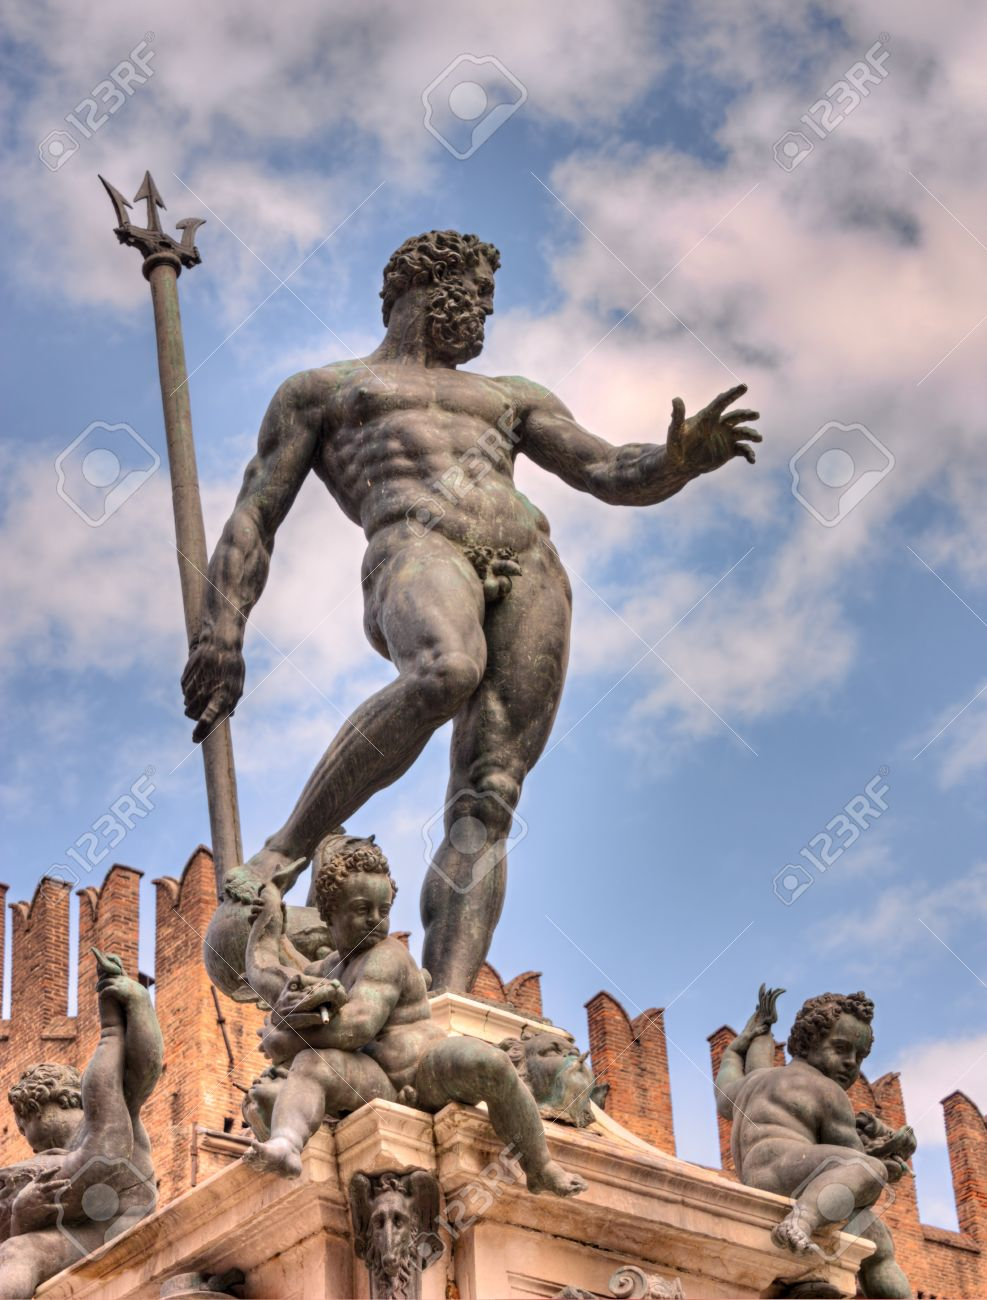 The Antique Statue Of Neptune, The God Of Water And The Sea In ...